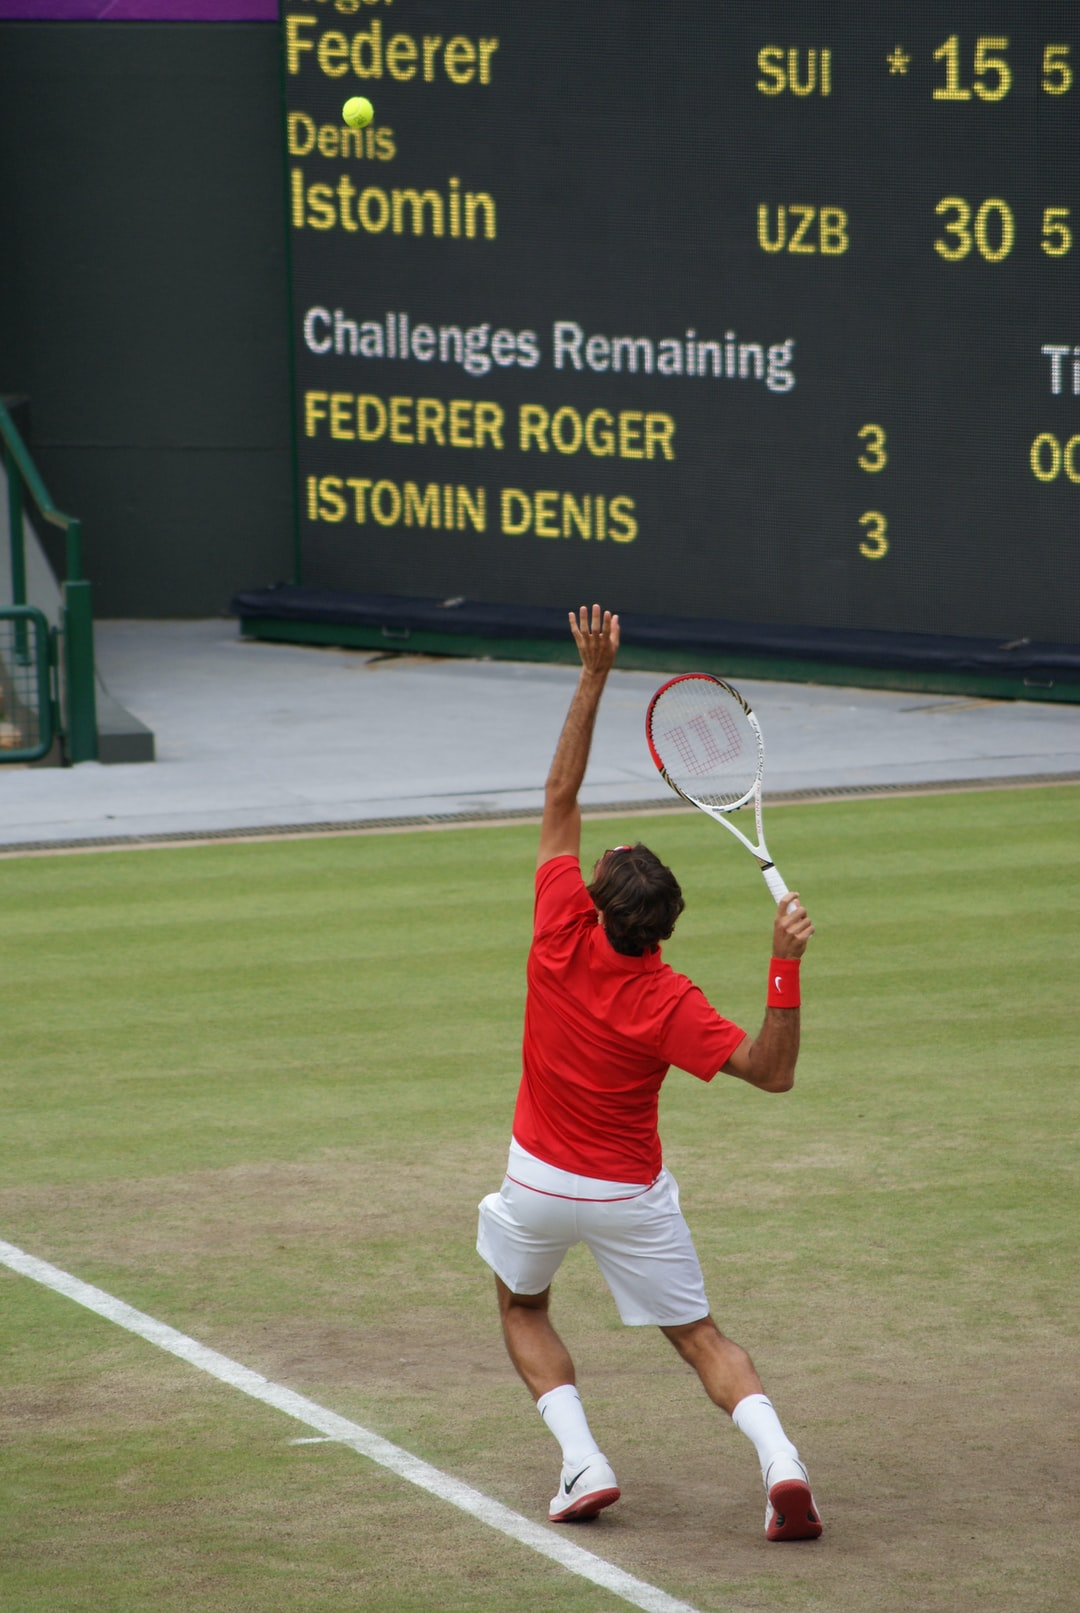 Roger Federer serving during one of his matches at the 2012 London Olympics.